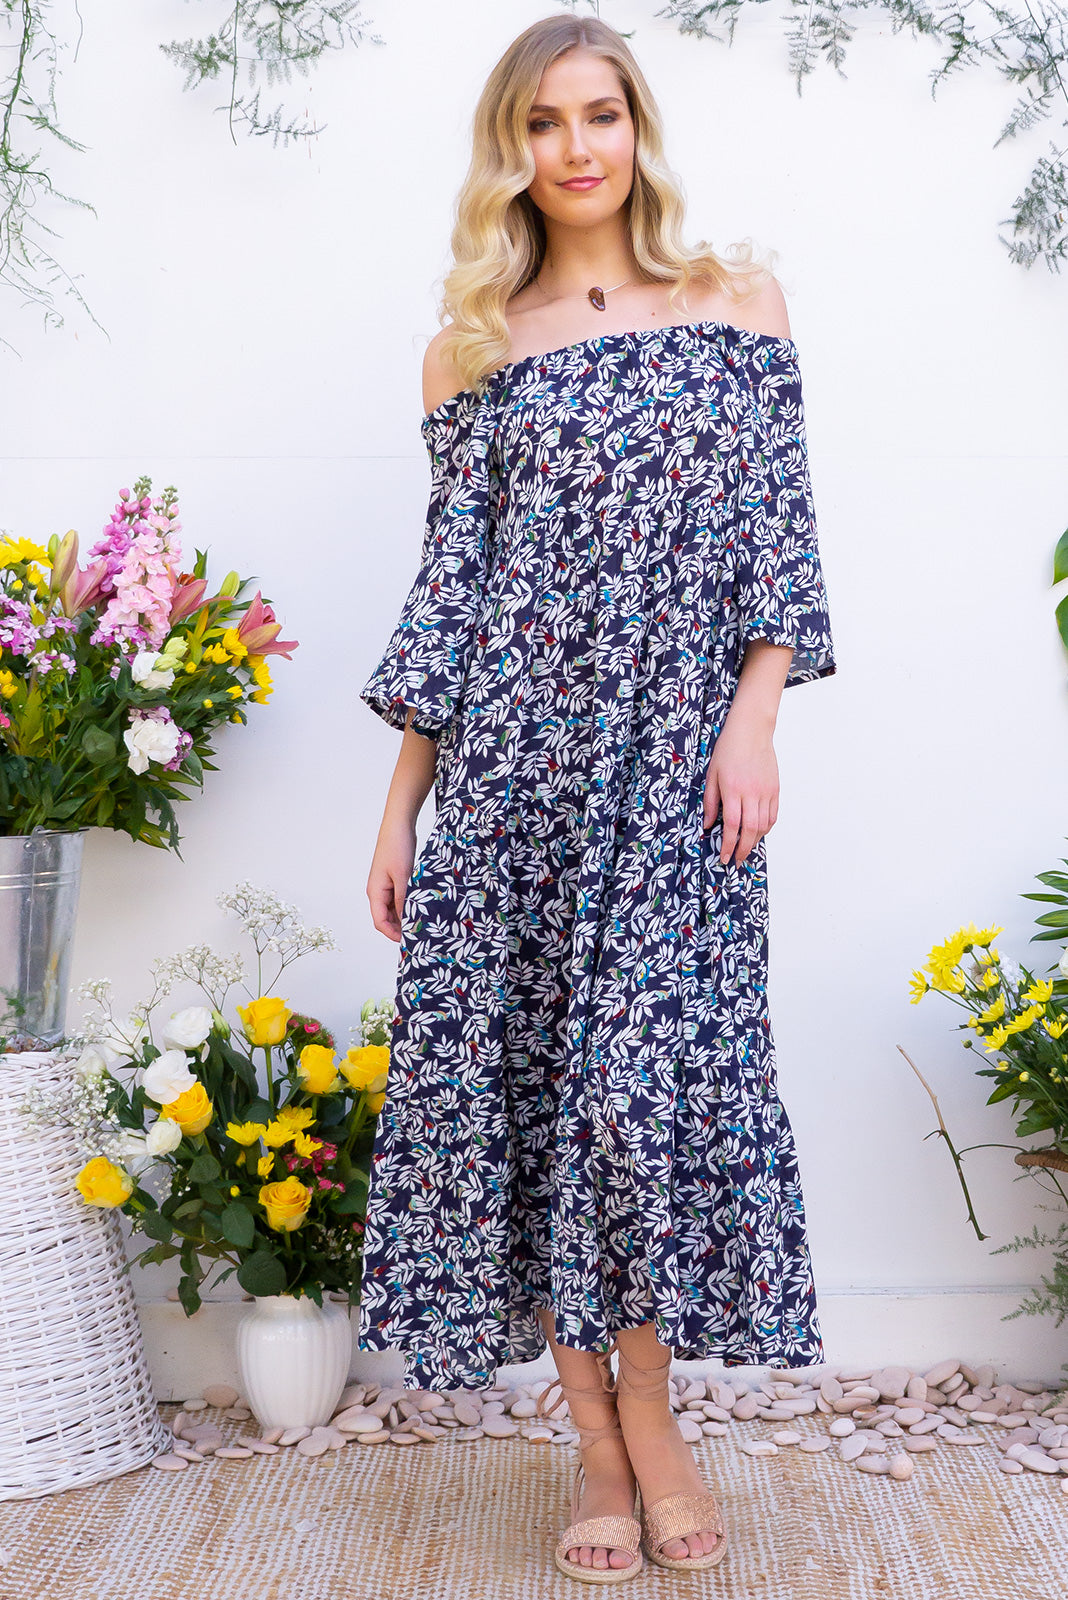 Lulu Liberty Navy Bird Maxi Swing Dress is a summer staple for this year. Navy base with a bird and leaf print on rayon/cotton blend fabric. Includes waist tie for belt and adjustable neckline can be worn on or off shoulder.